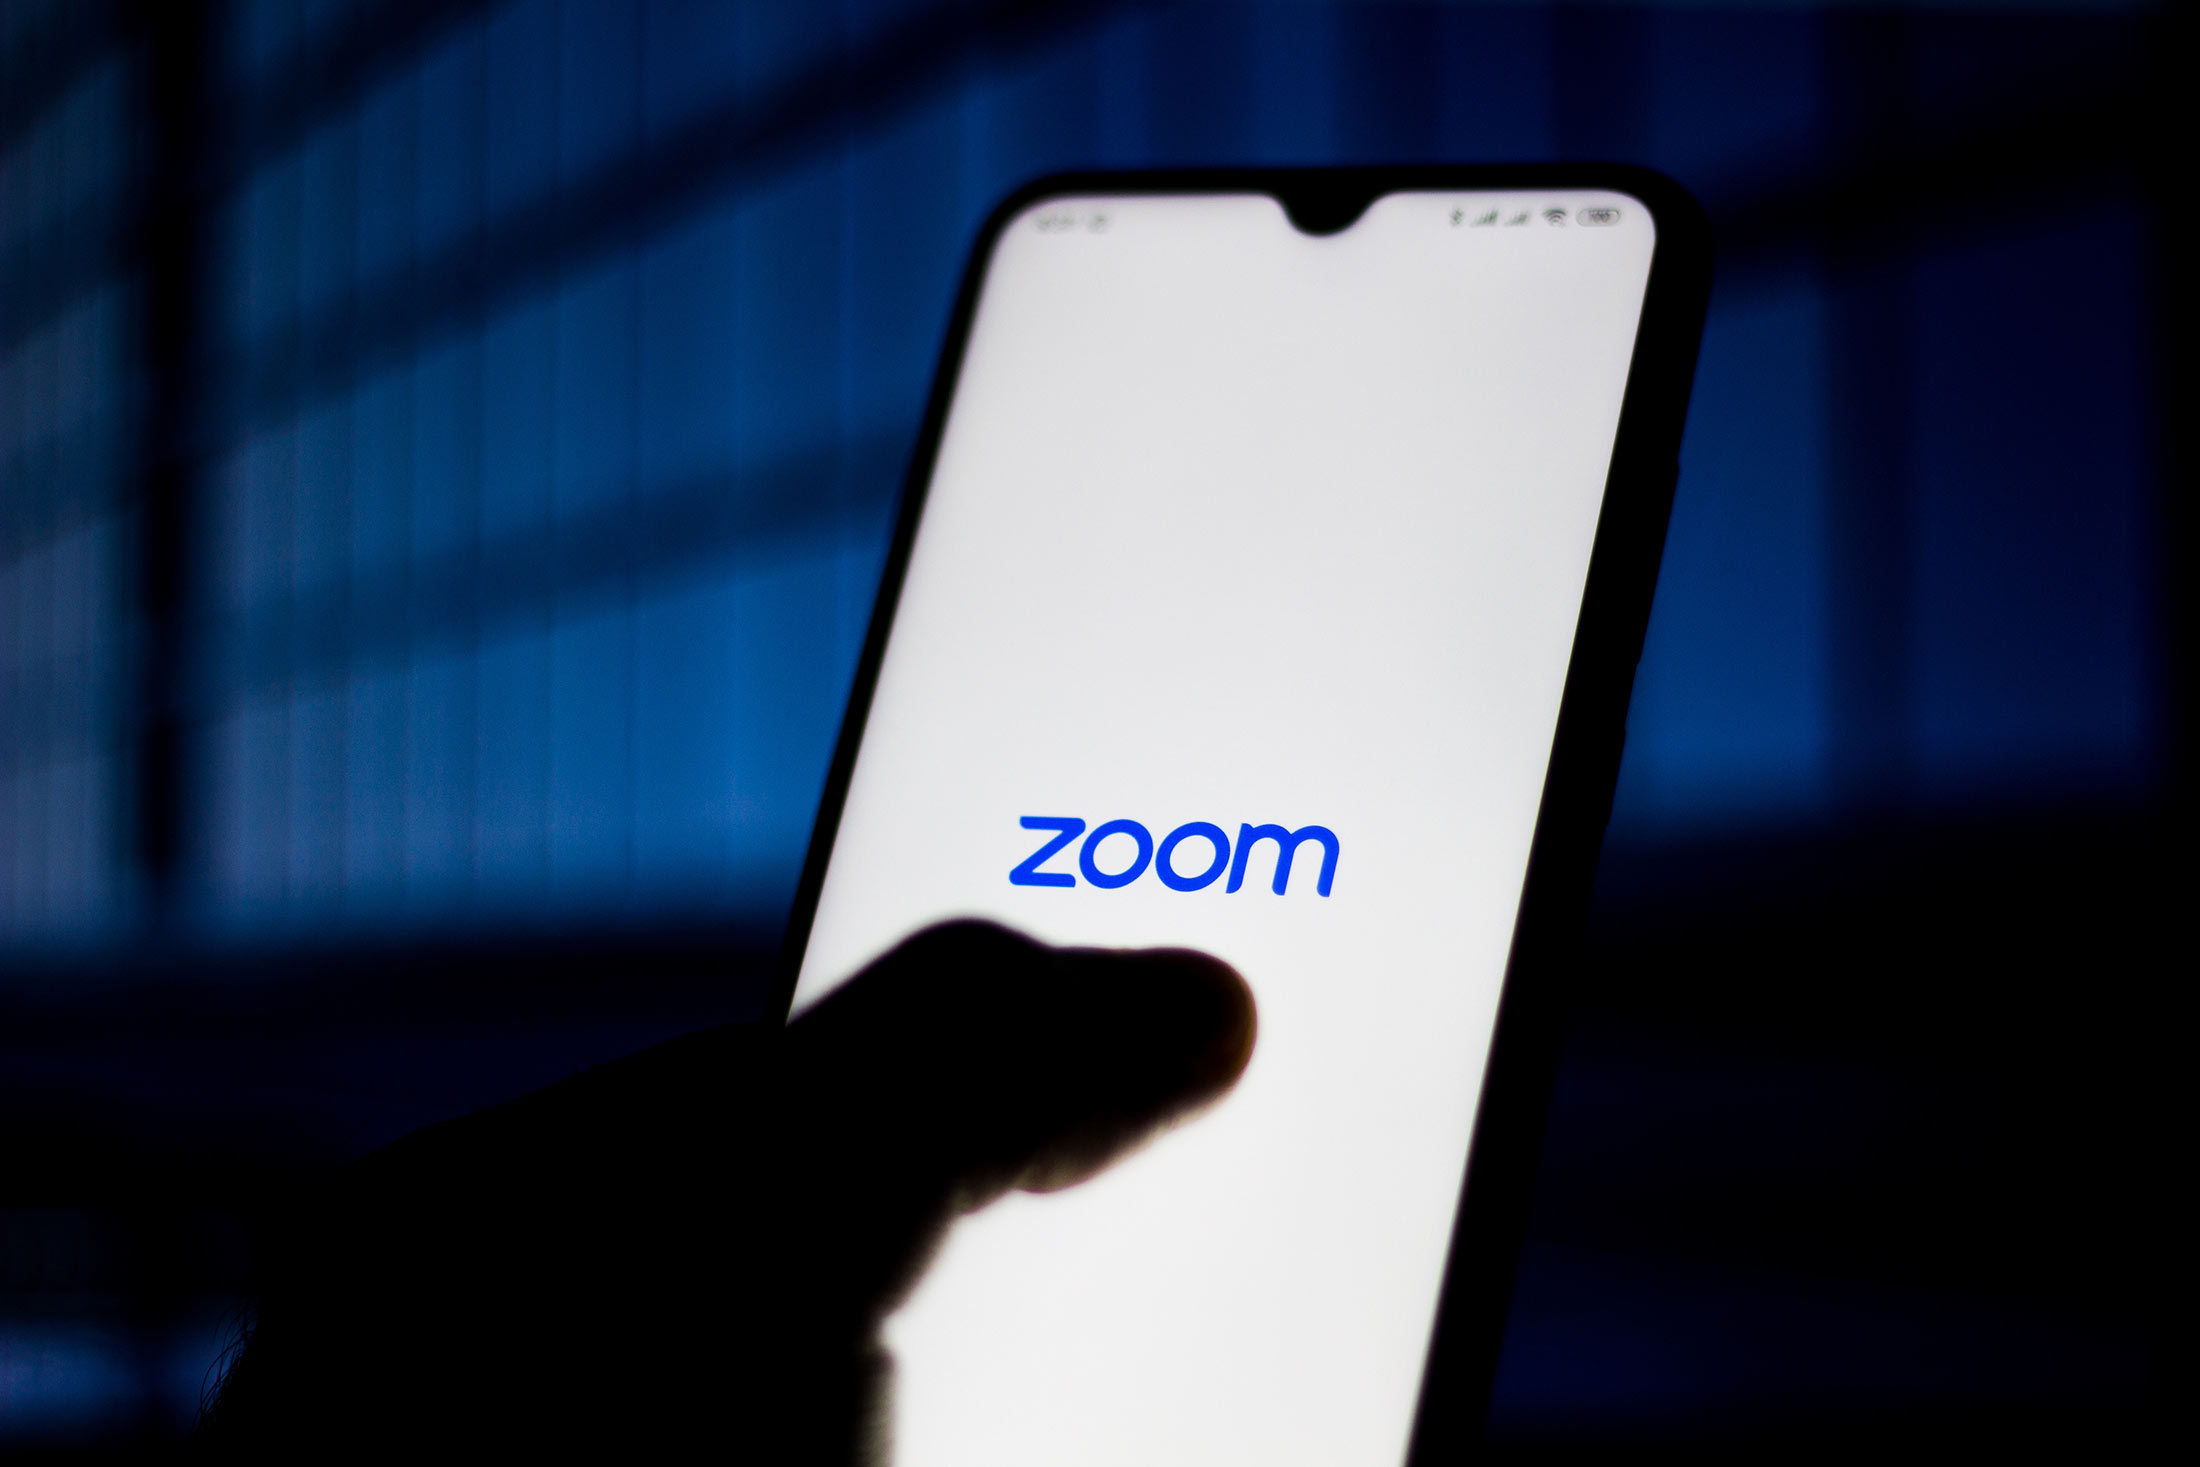 How to Use the Zoom App on a Mobile Device